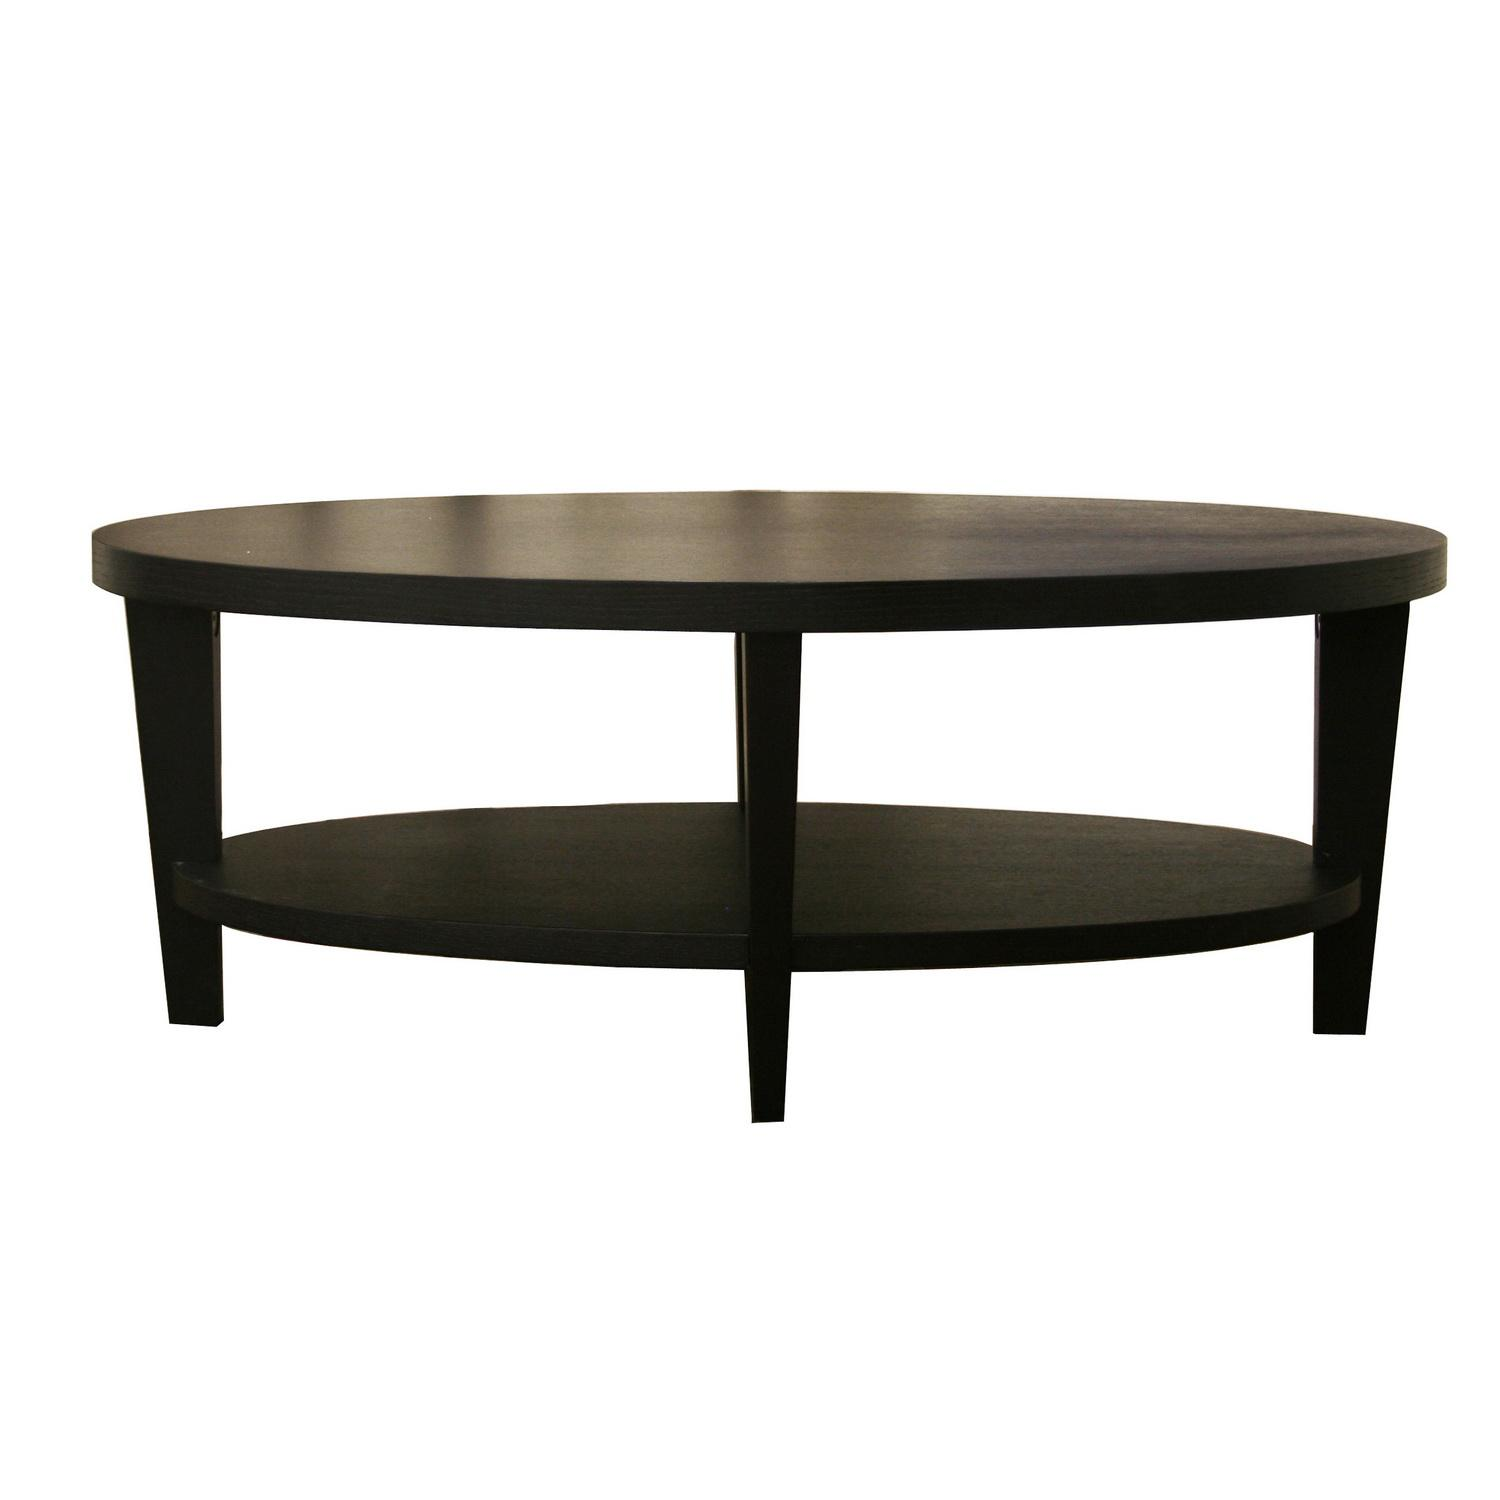 Wood Oval Coffee Table Made In China: Charleston Modern Oval Black Wood Coffee Table